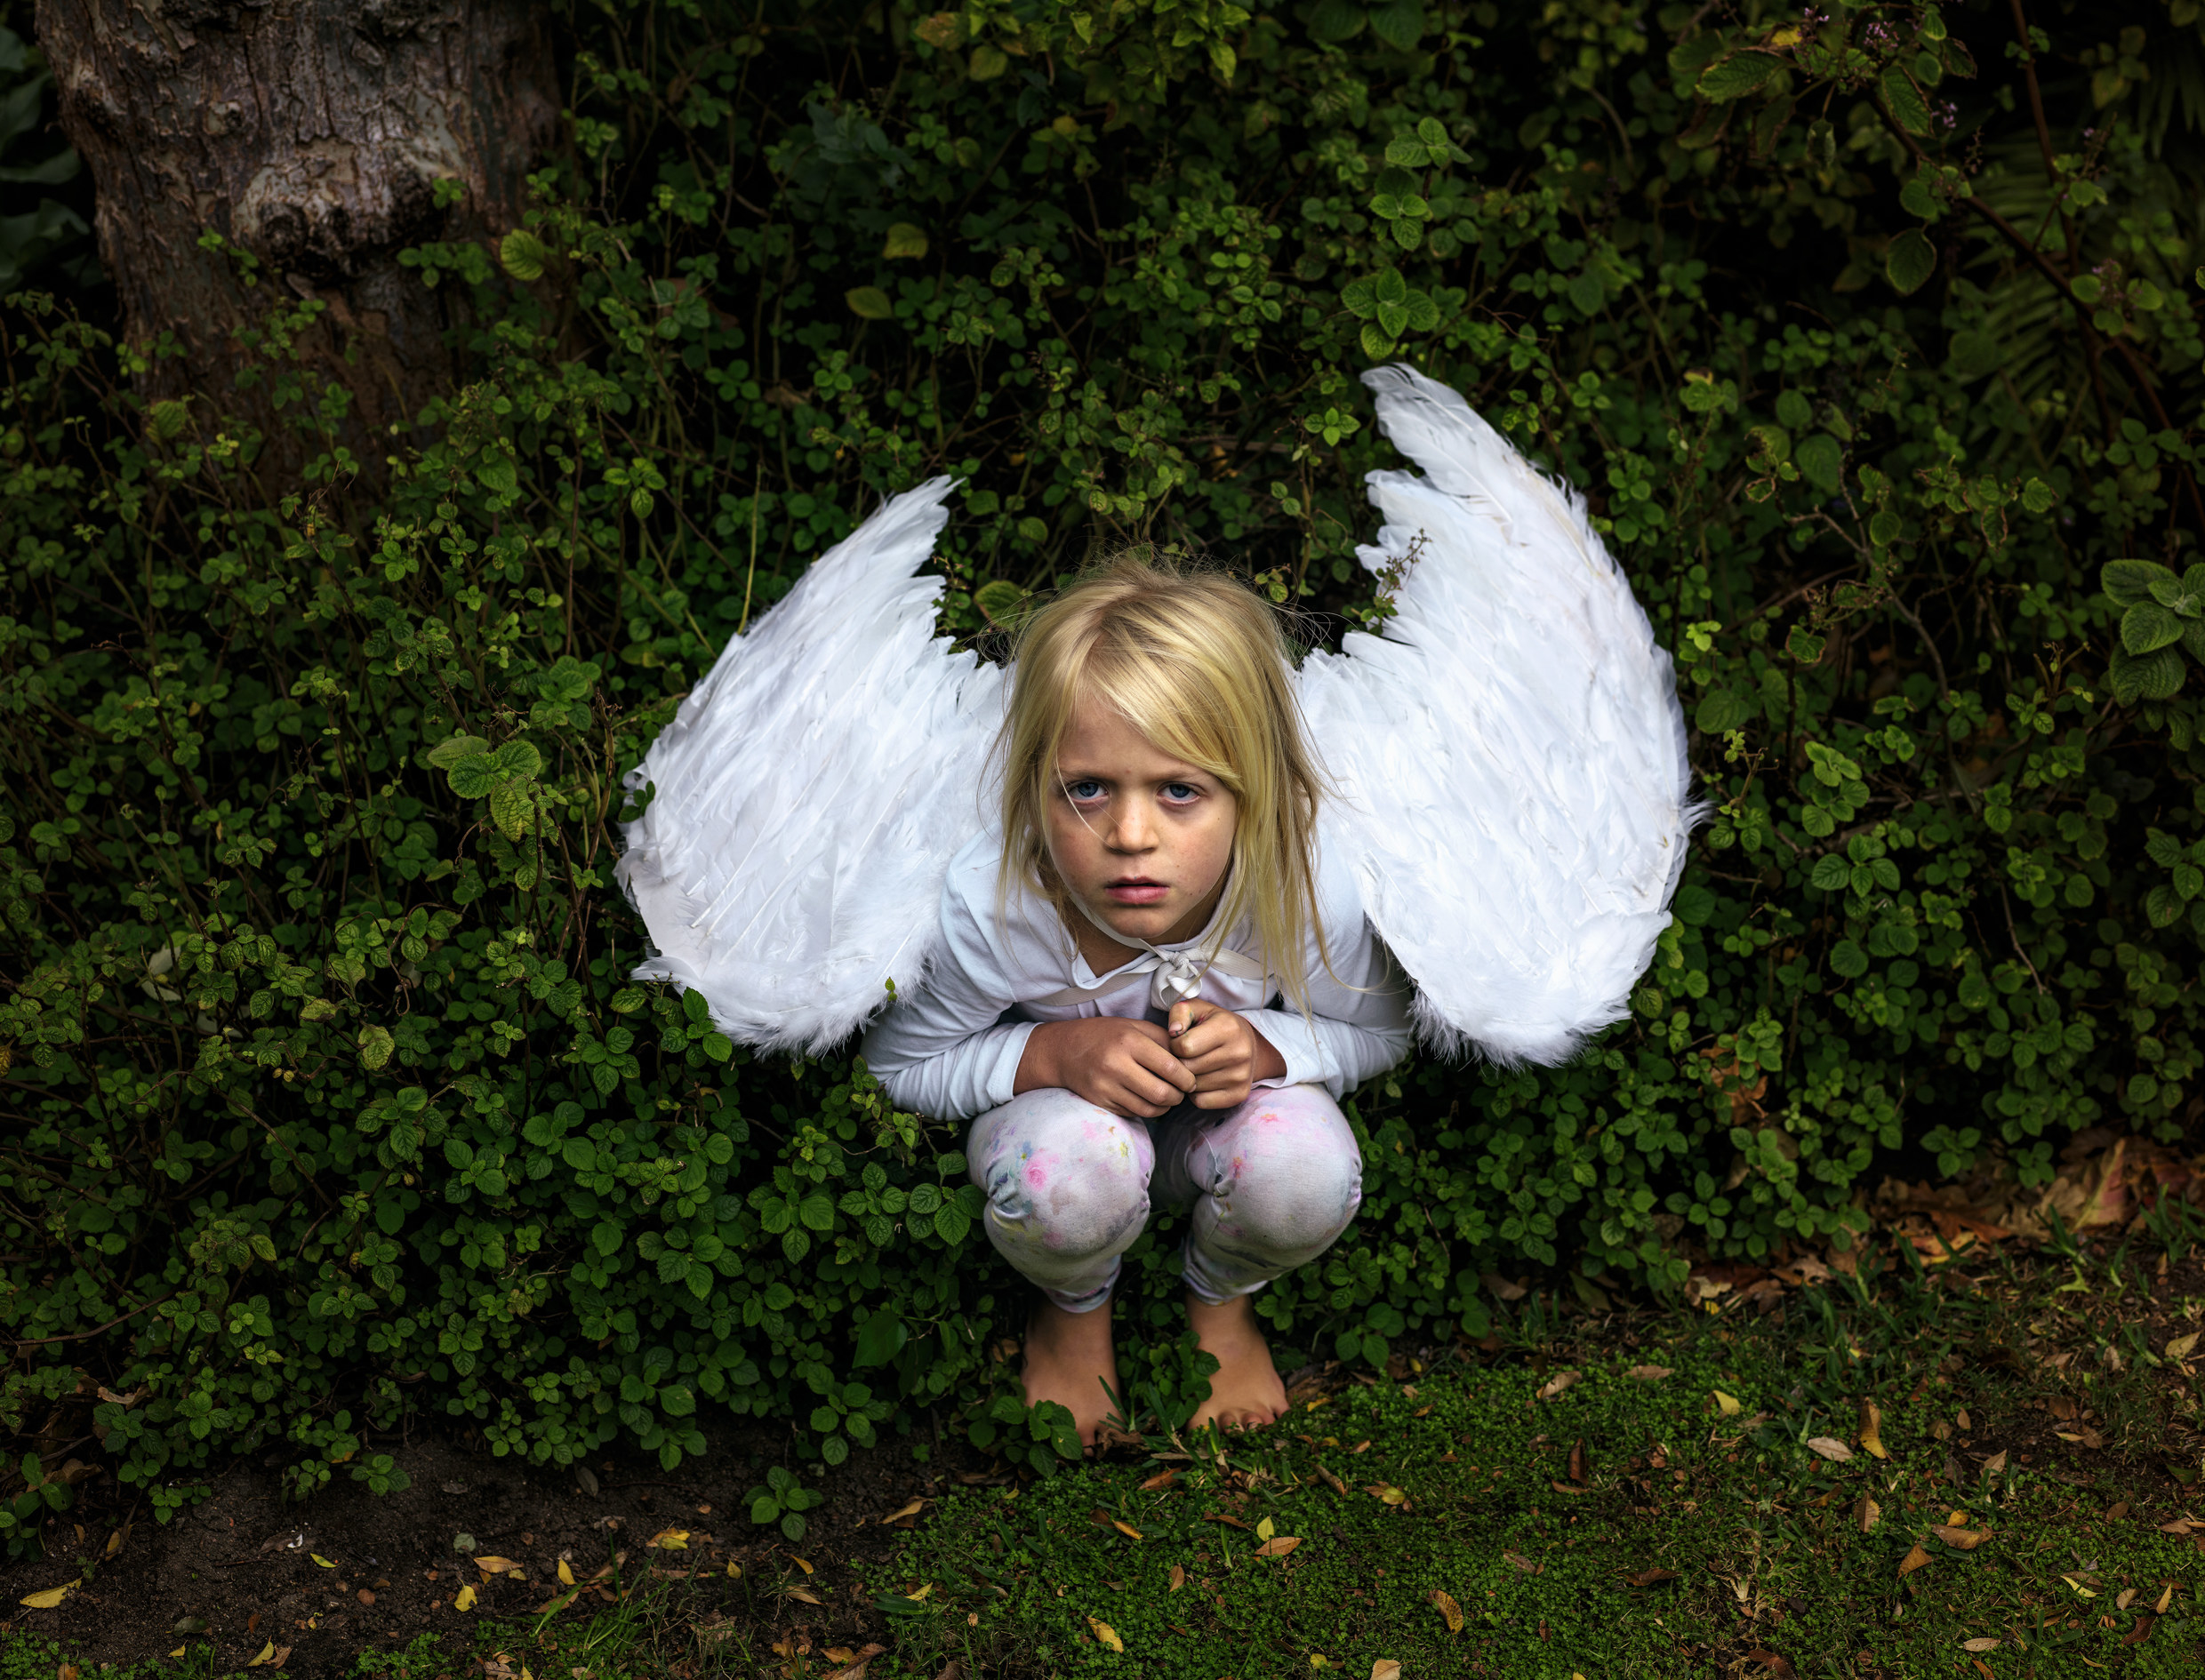 A small child wearing pajamas and angel wings crouching down in from of a hedge